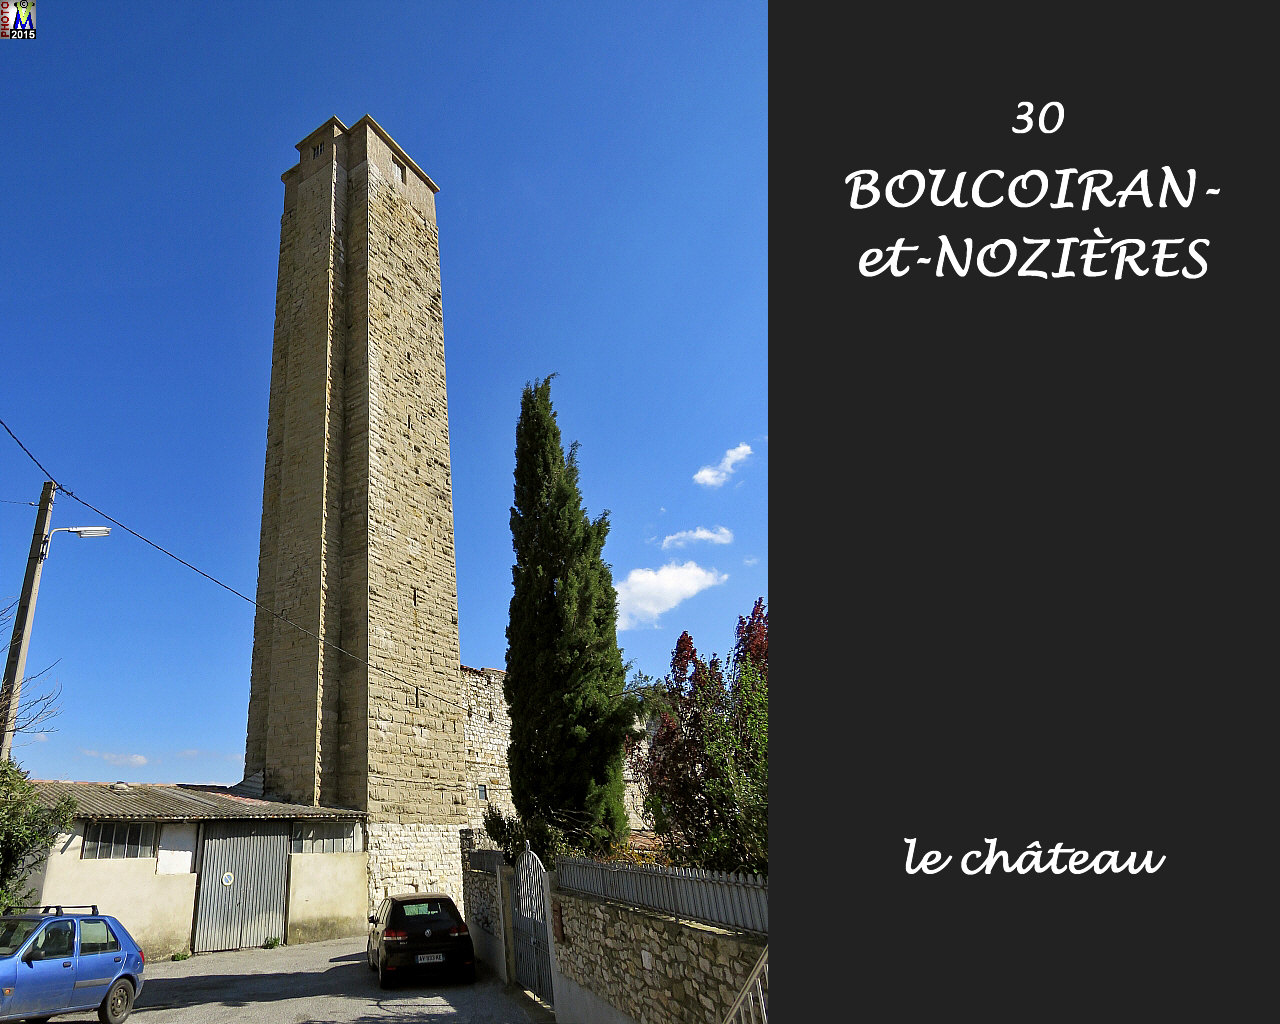 30BOUCOIRAN-NOZIERES_chateau_104.jpg